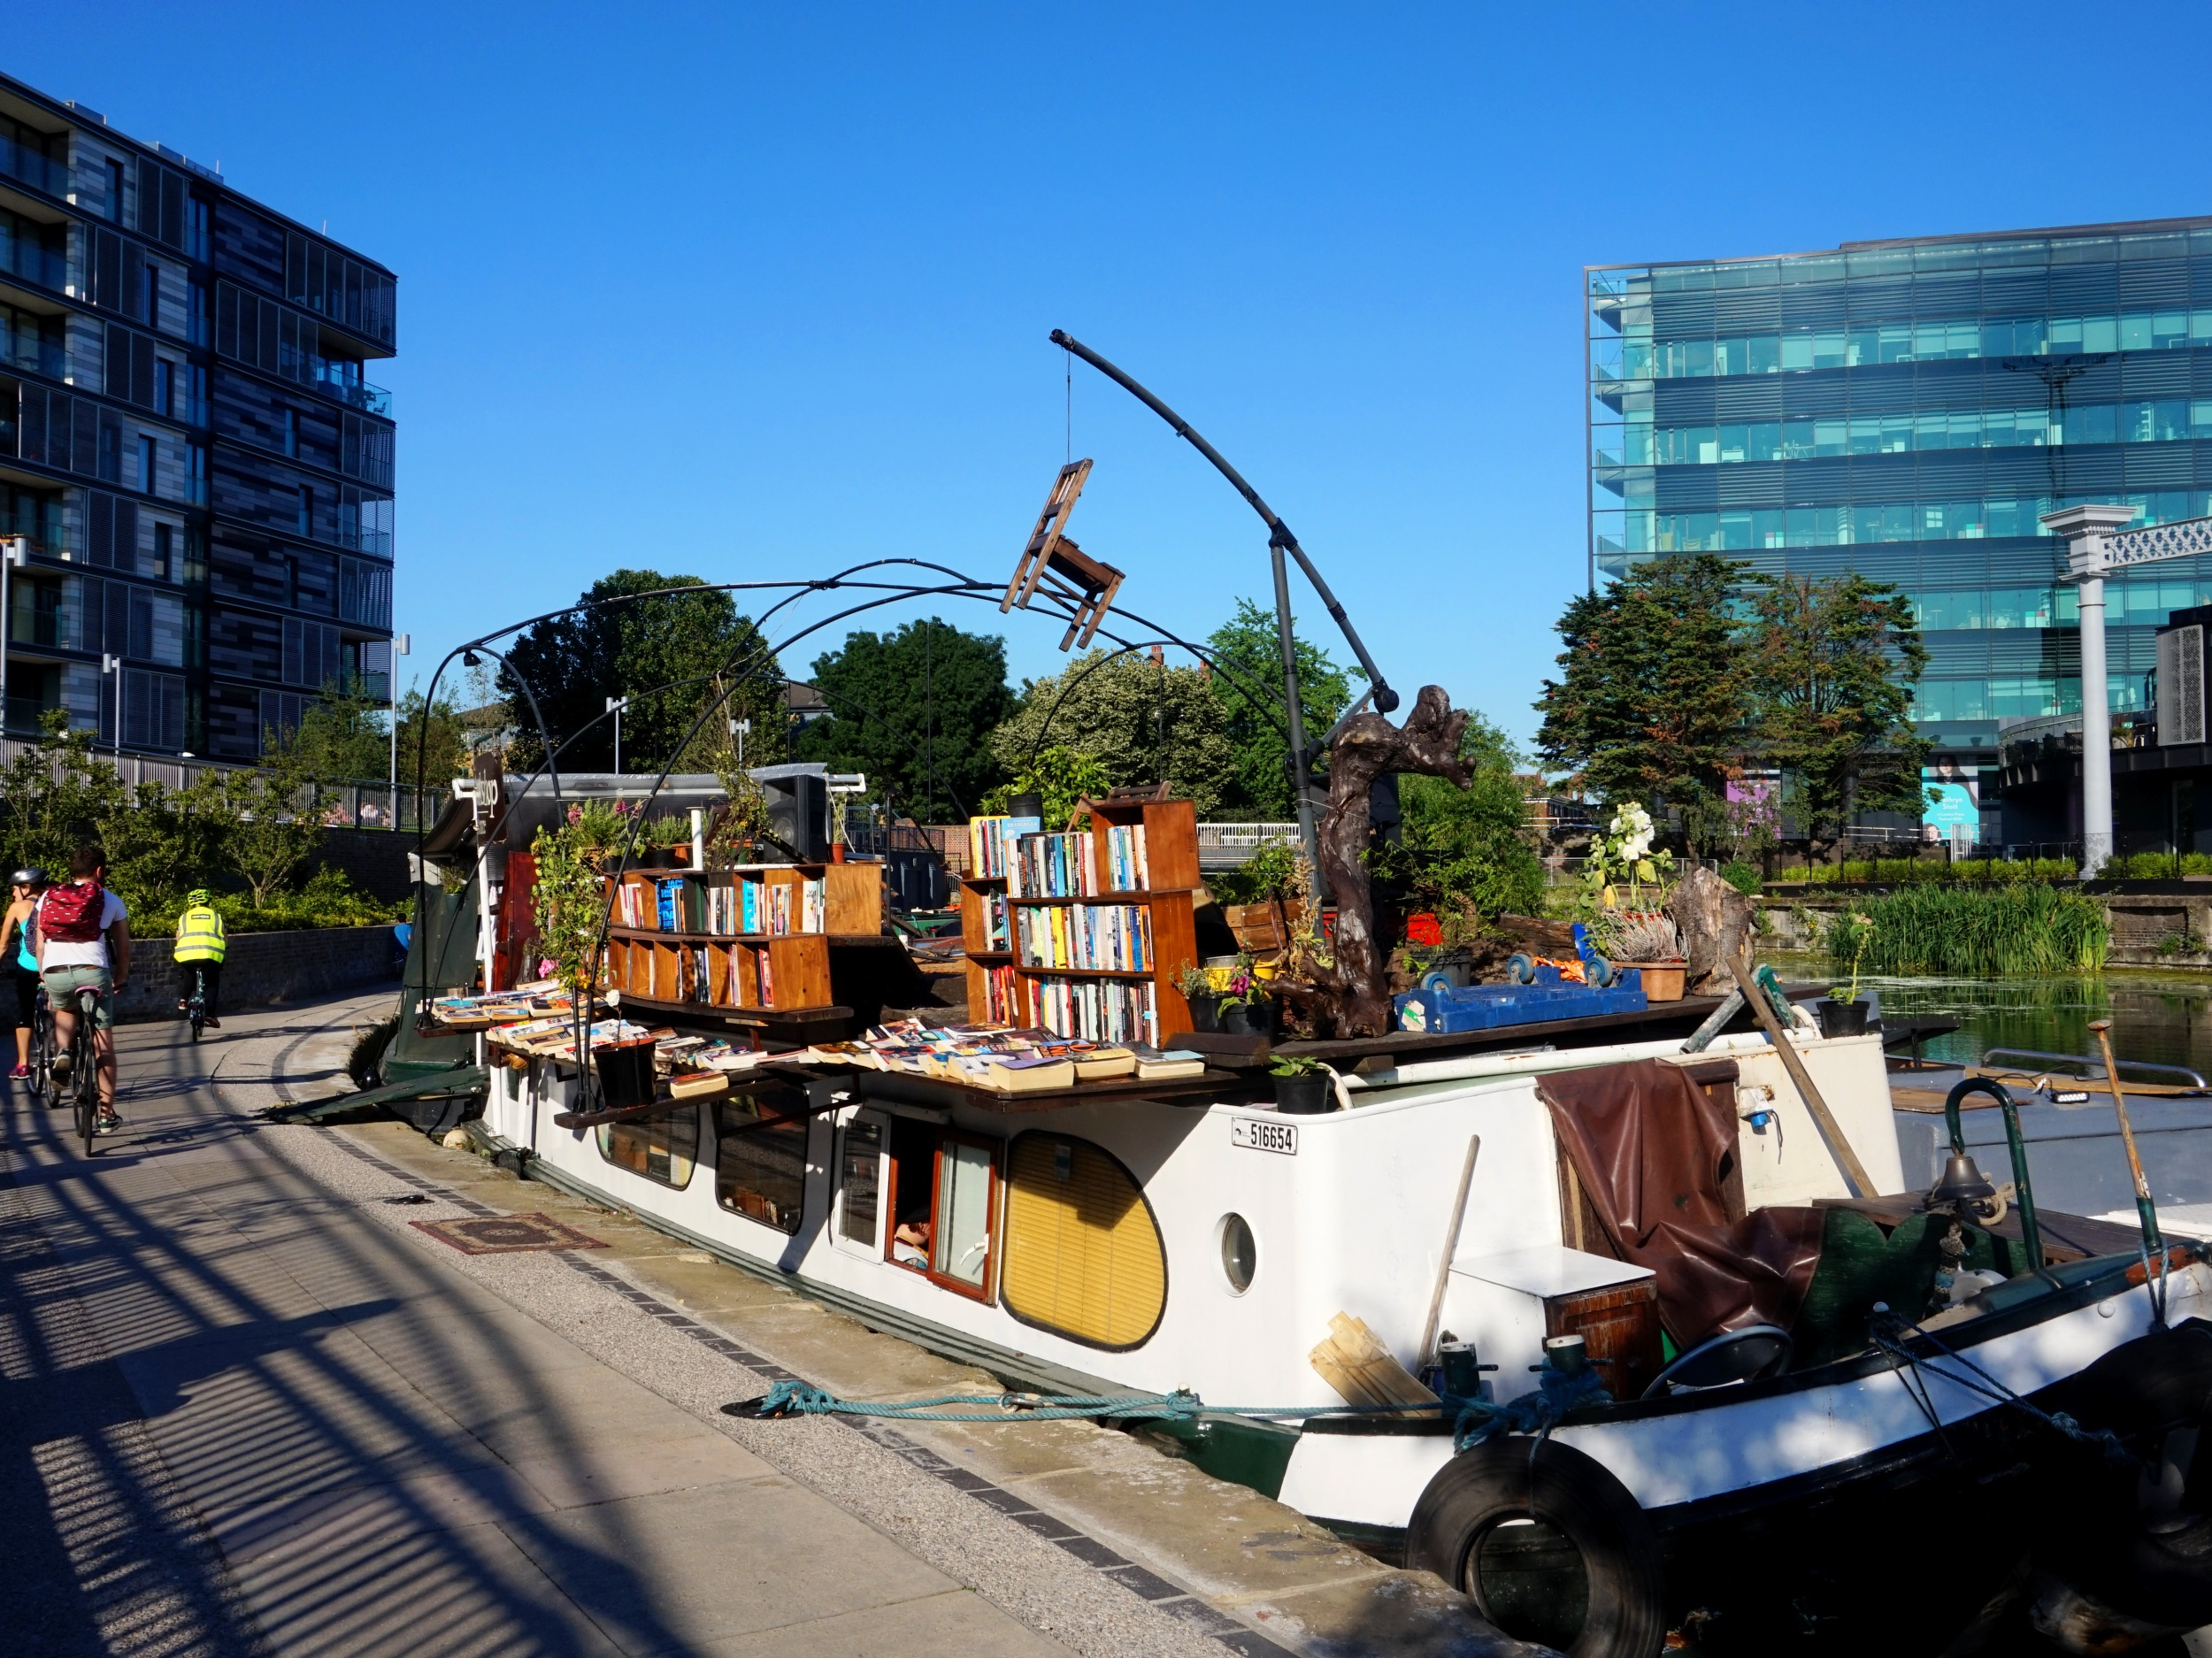 Regents-Canal-71